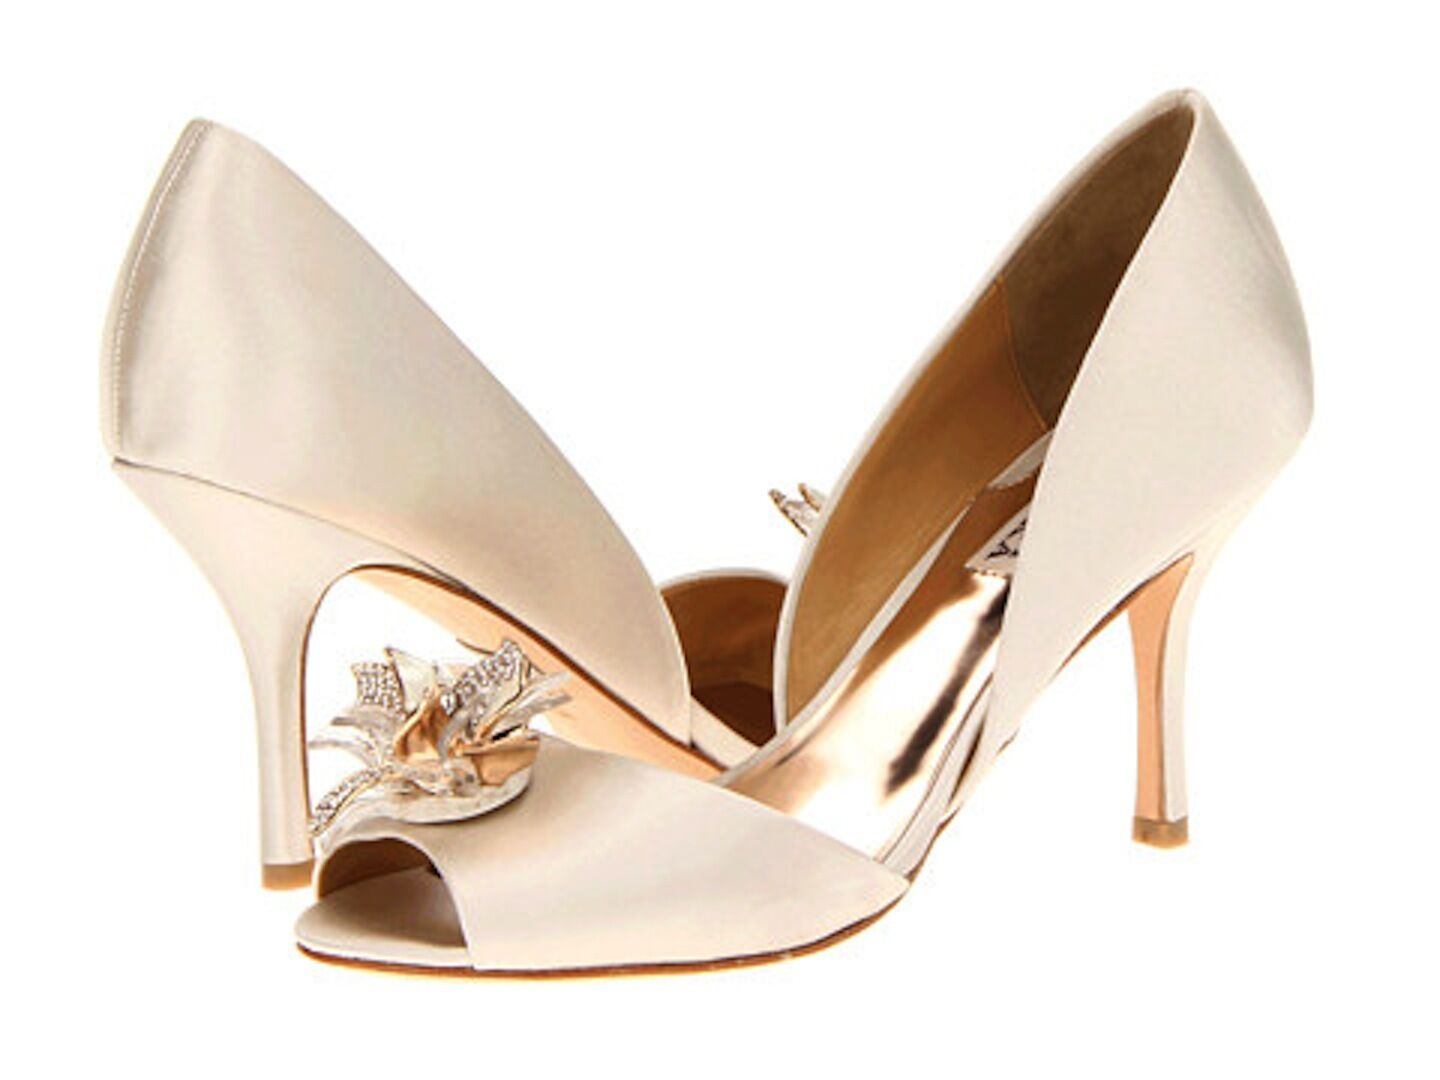 Badgley Mischka Clarissa D'orsay open toe pump heel sandals shoes 10 Ivory NIB